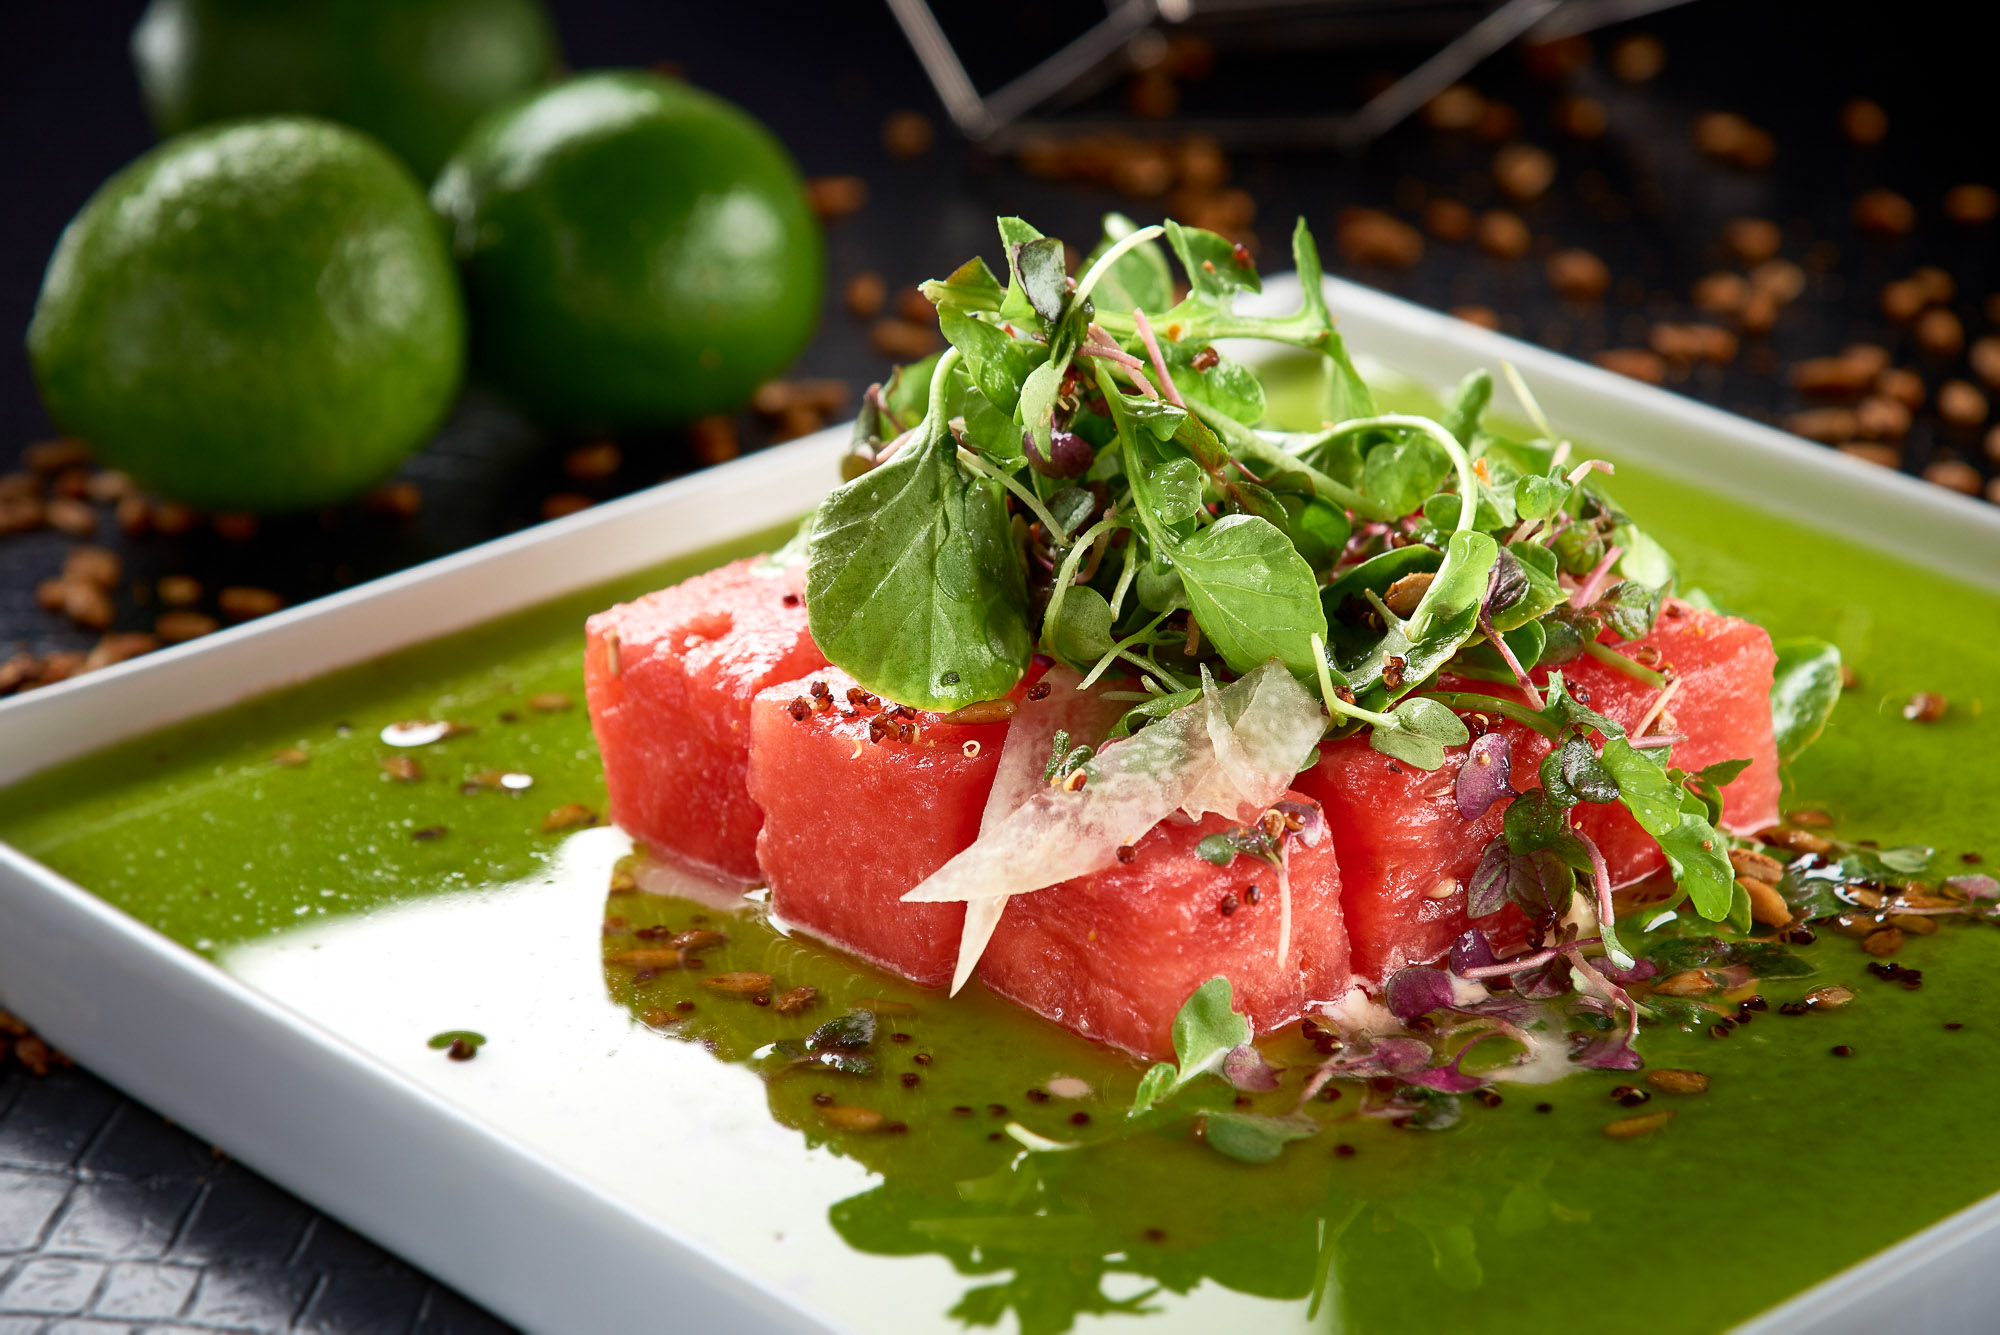 Copy of Watermelon Salad